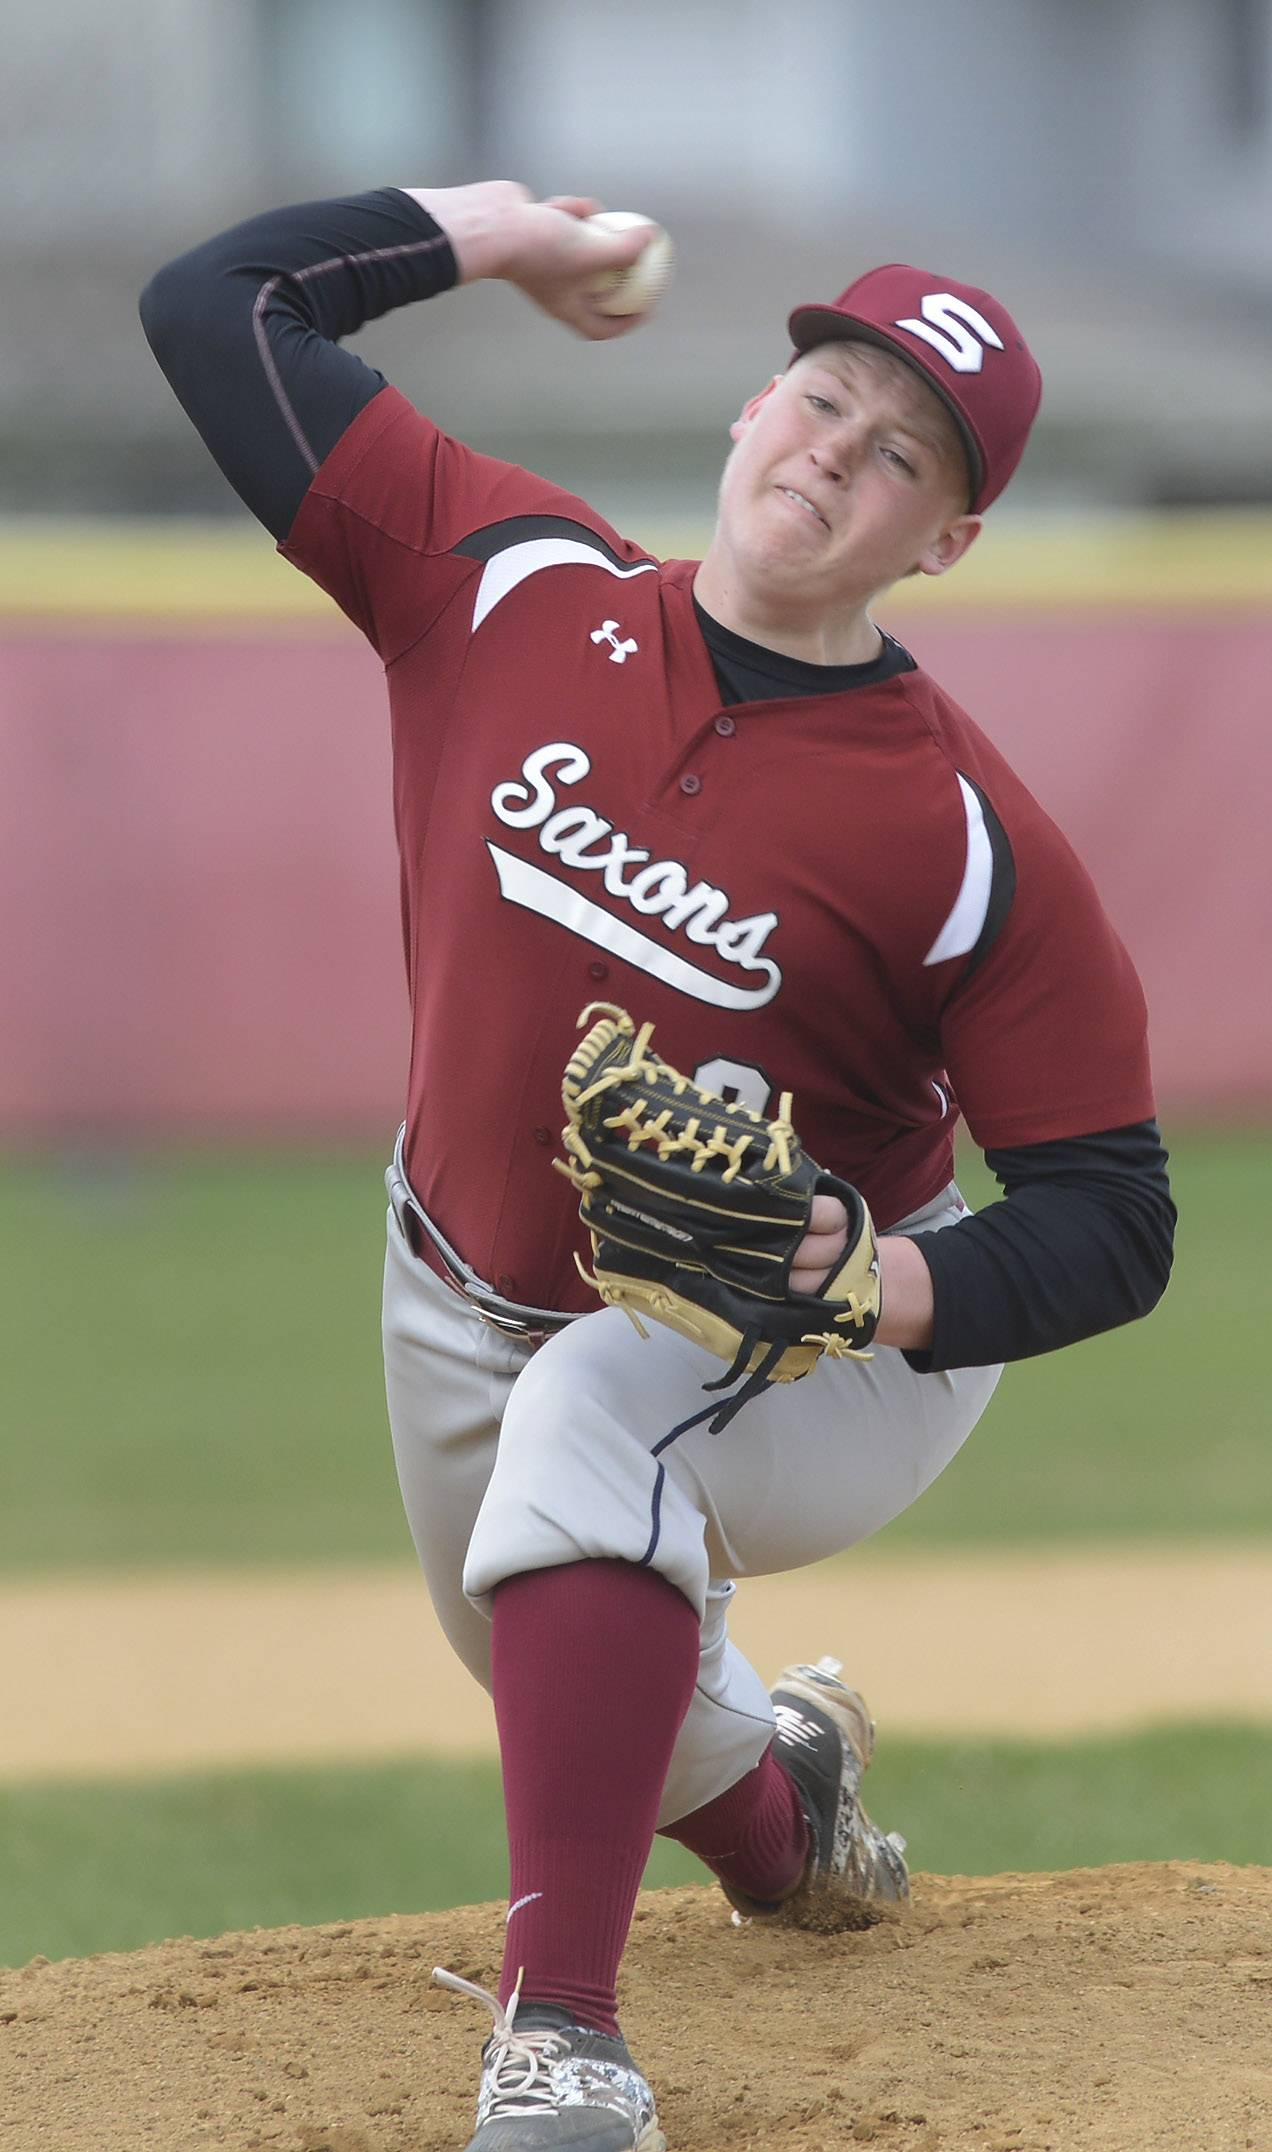 Schaumburg pitcher Brendan Beck delivers to the plate during Wednesday's game against Conant.